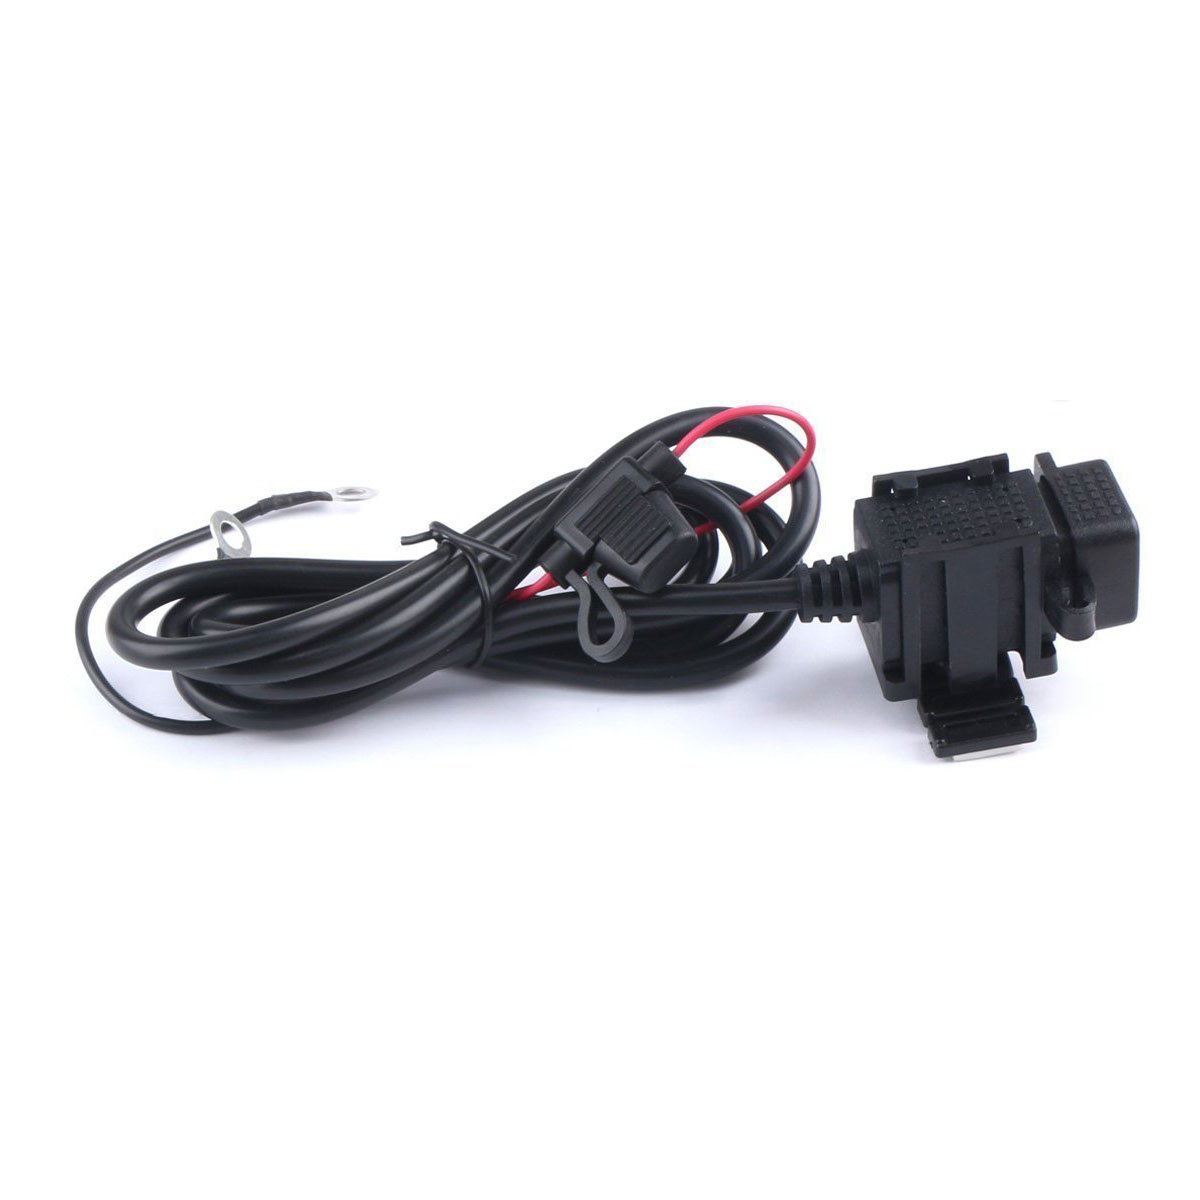 Waterproof Dual USB Charger Motorcycle Cell-Phone Charging Port 12V to 5V/2.1A Power Adapter